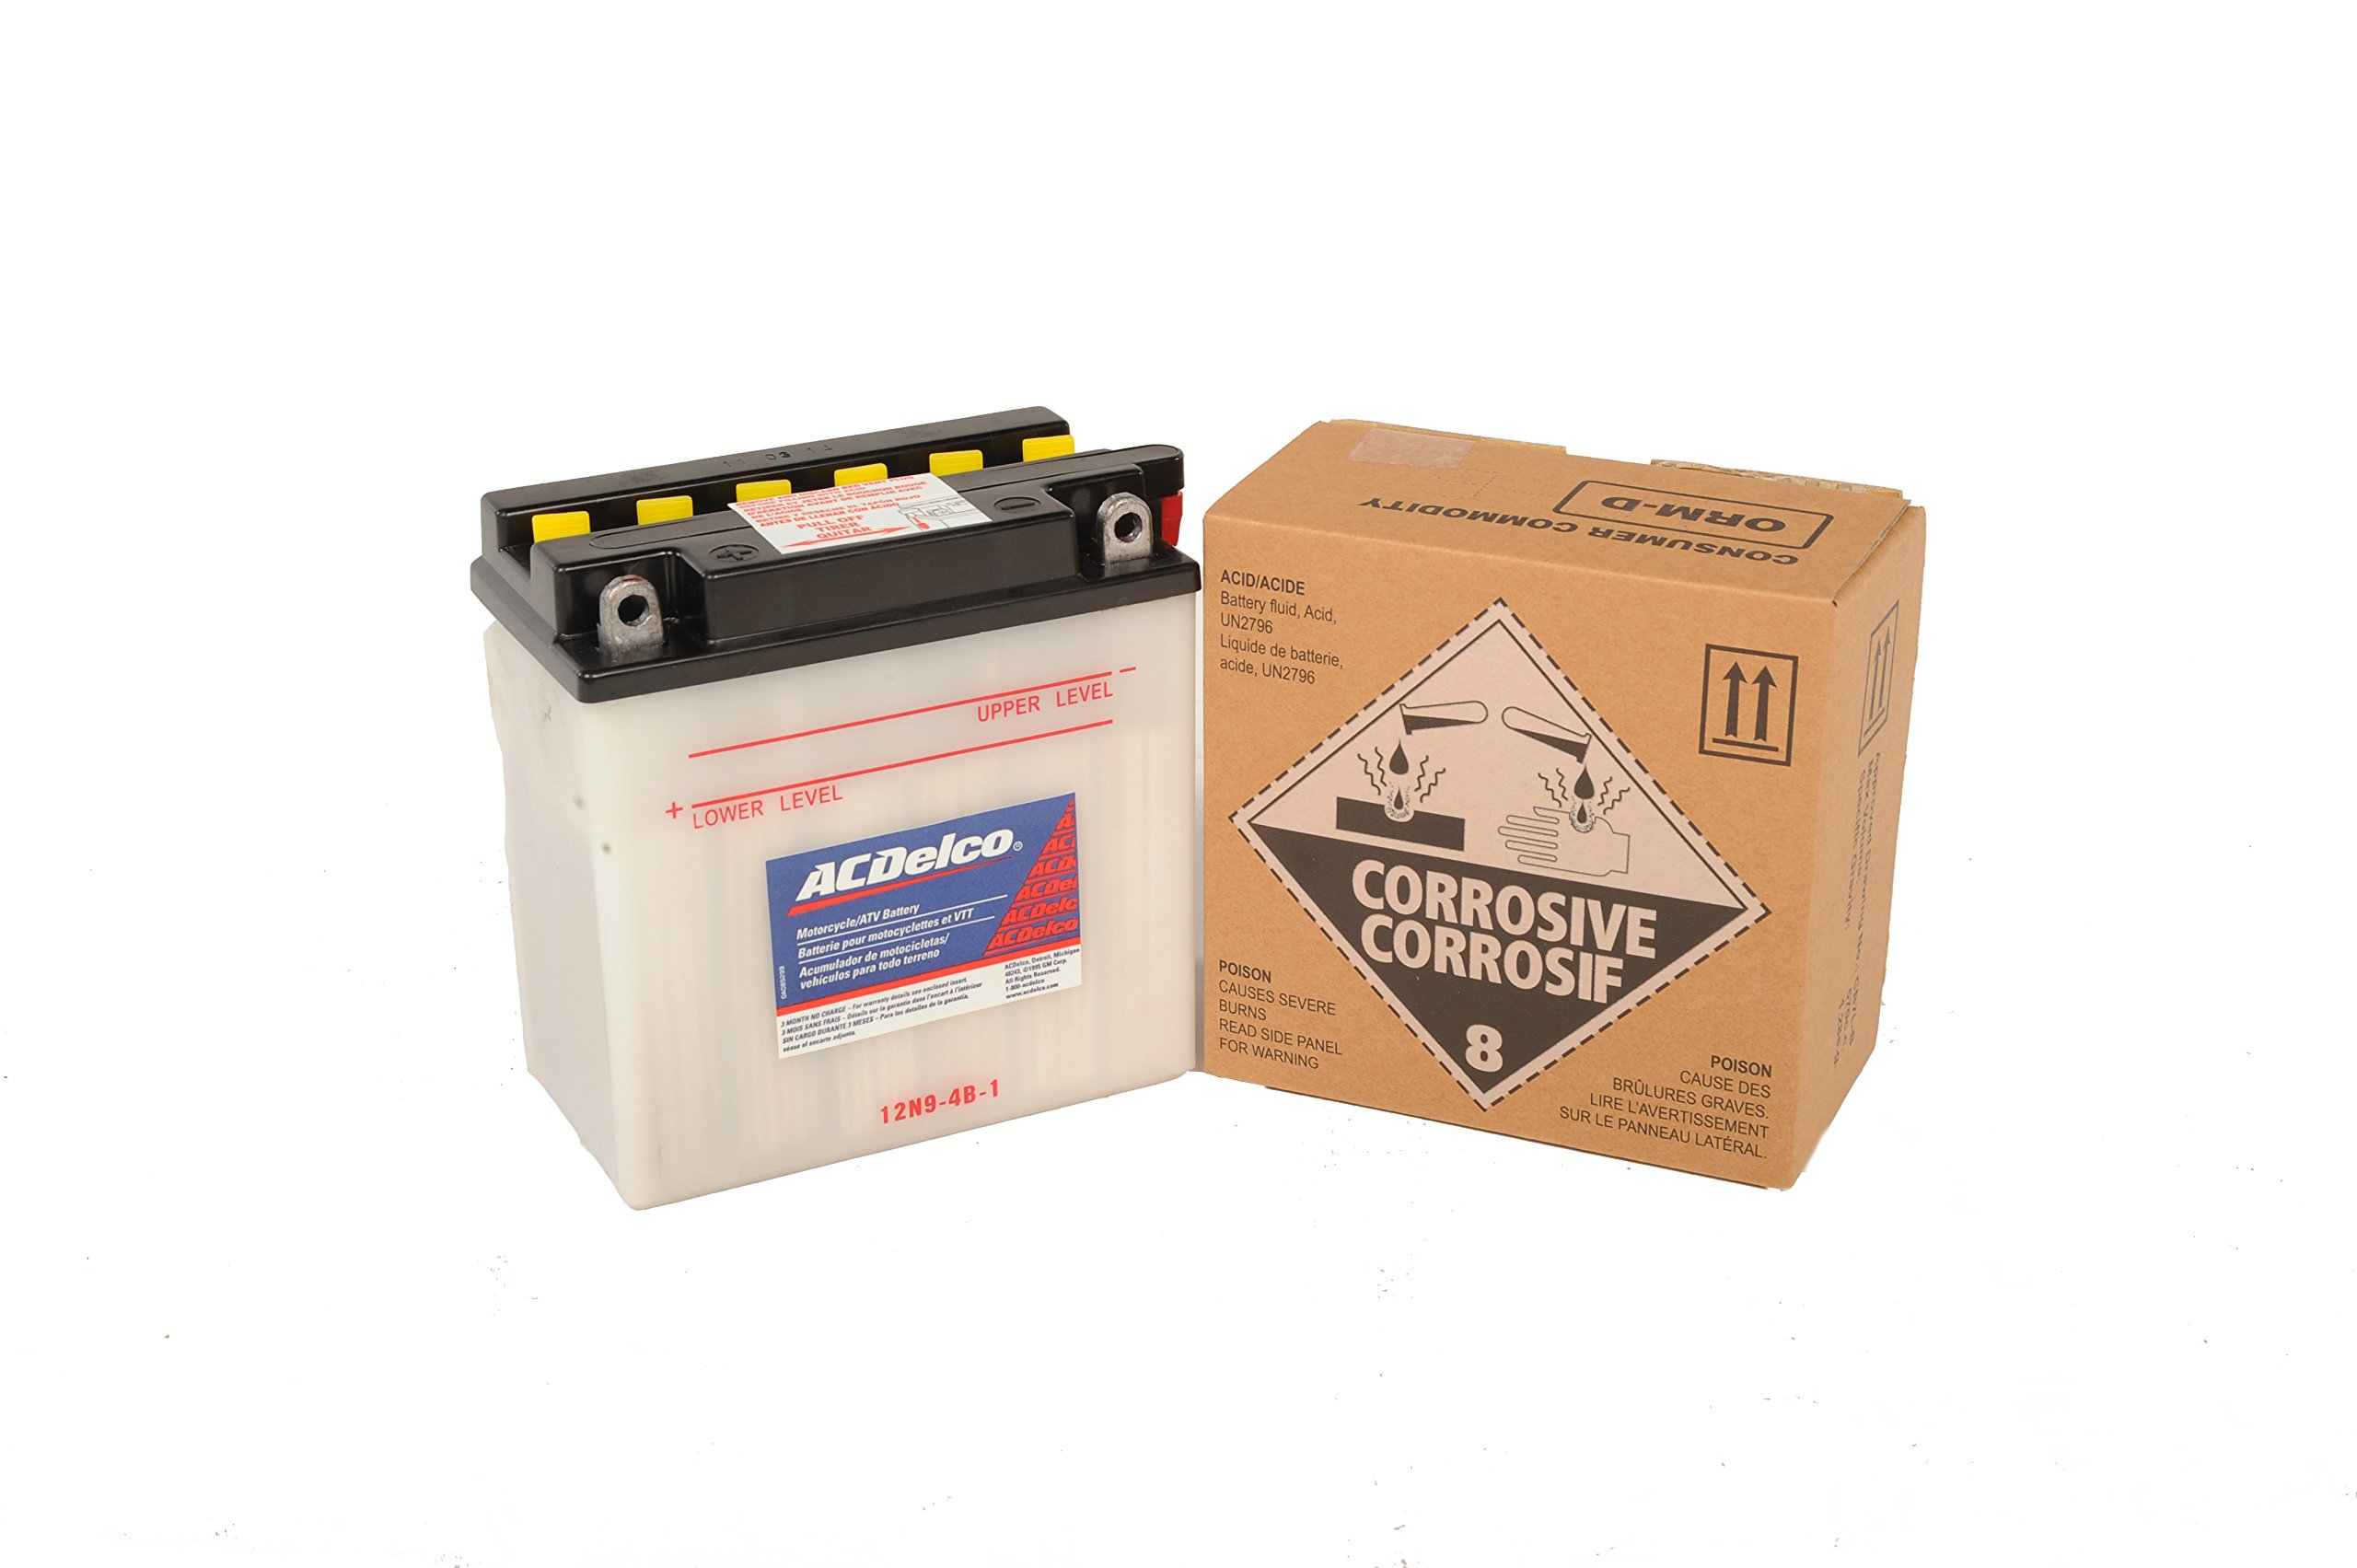 ACDelco AB12N94B1 Specialty Conventional Powersports JIS 12N9-4B-1 Battery by ACDelco (Image #5)